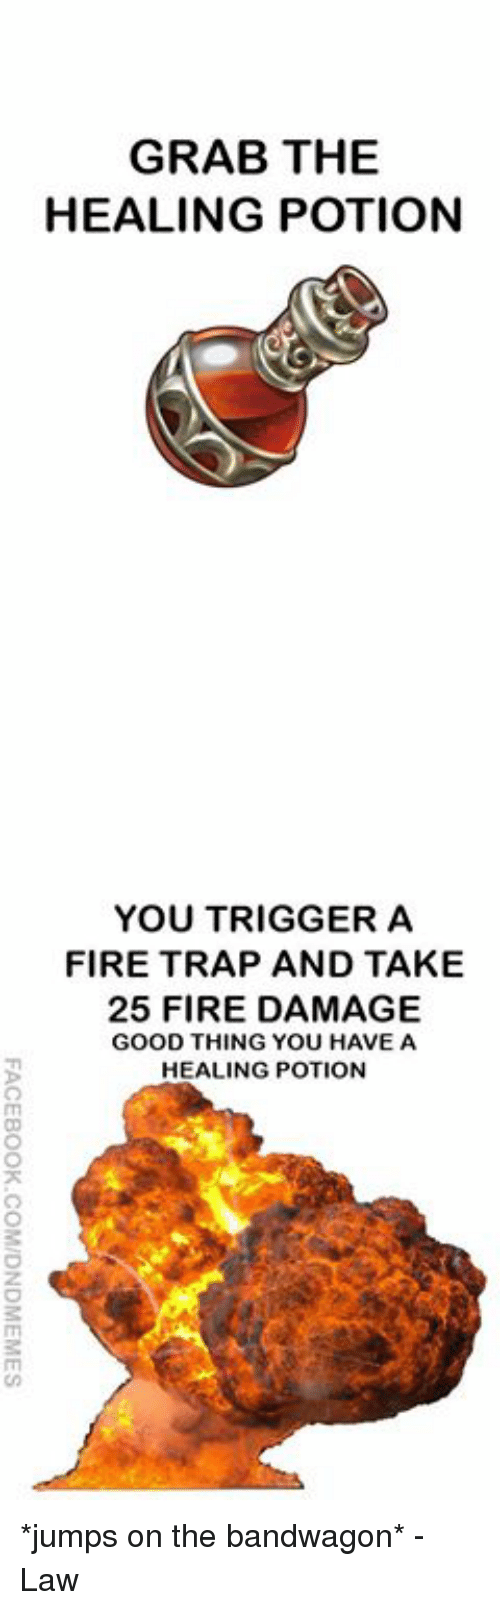 Fire, Trap, and Good: GRAB THE  HEALING POTION  YOU TRIGGER A  FIRE TRAP AND TAKE  25 FIRE DAMAGE  GOOD THING YOU HAVE A  HEALING POTION *jumps on the bandwagon*  -Law